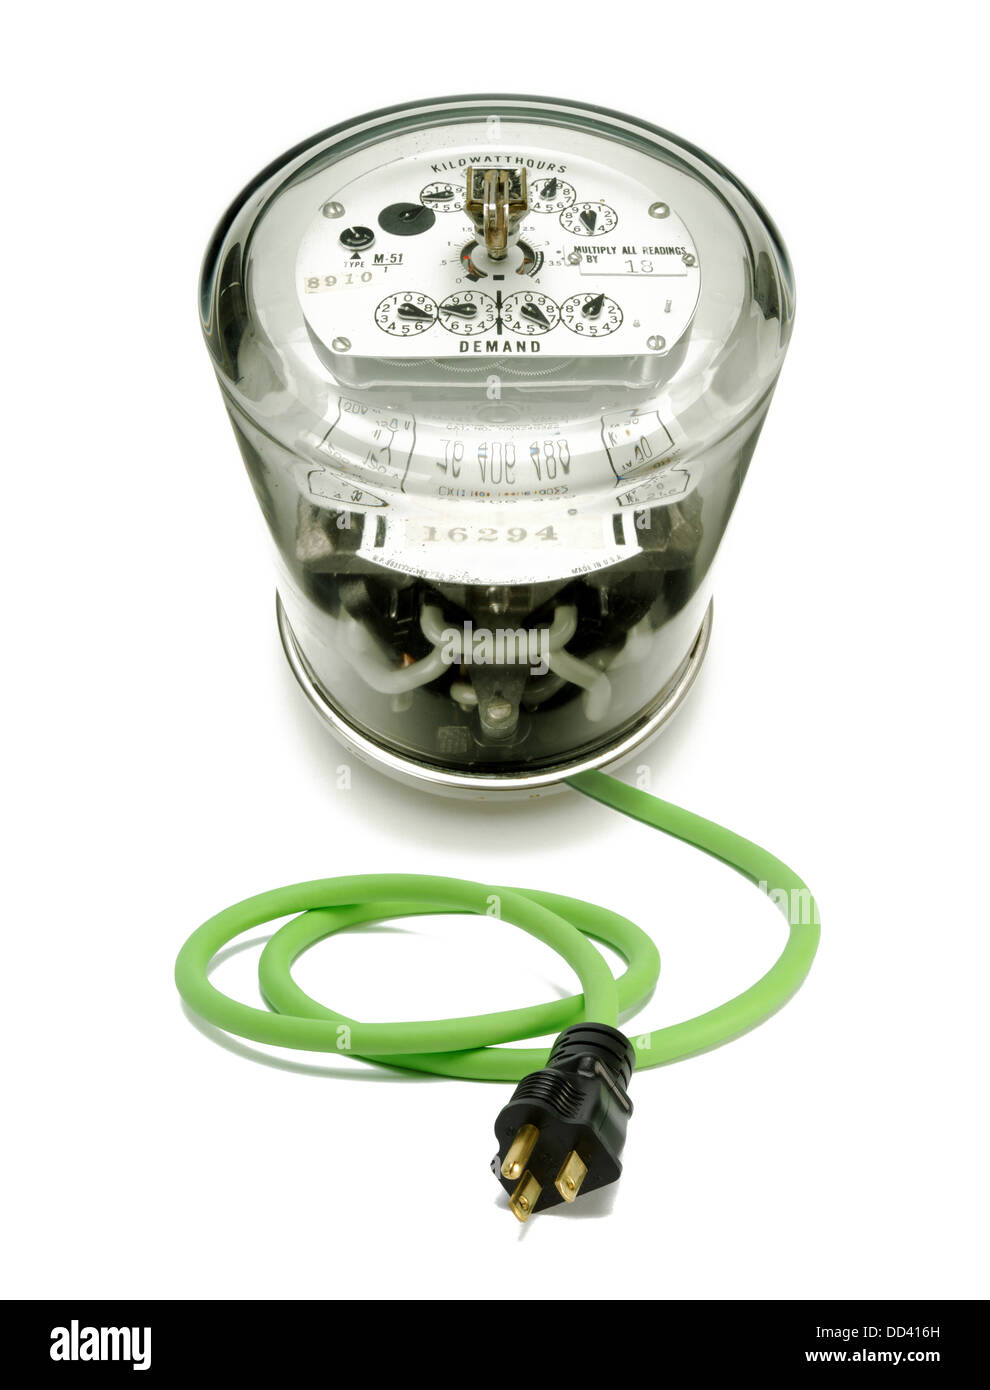 An electrical meter with a green cord and plug Stock Photo